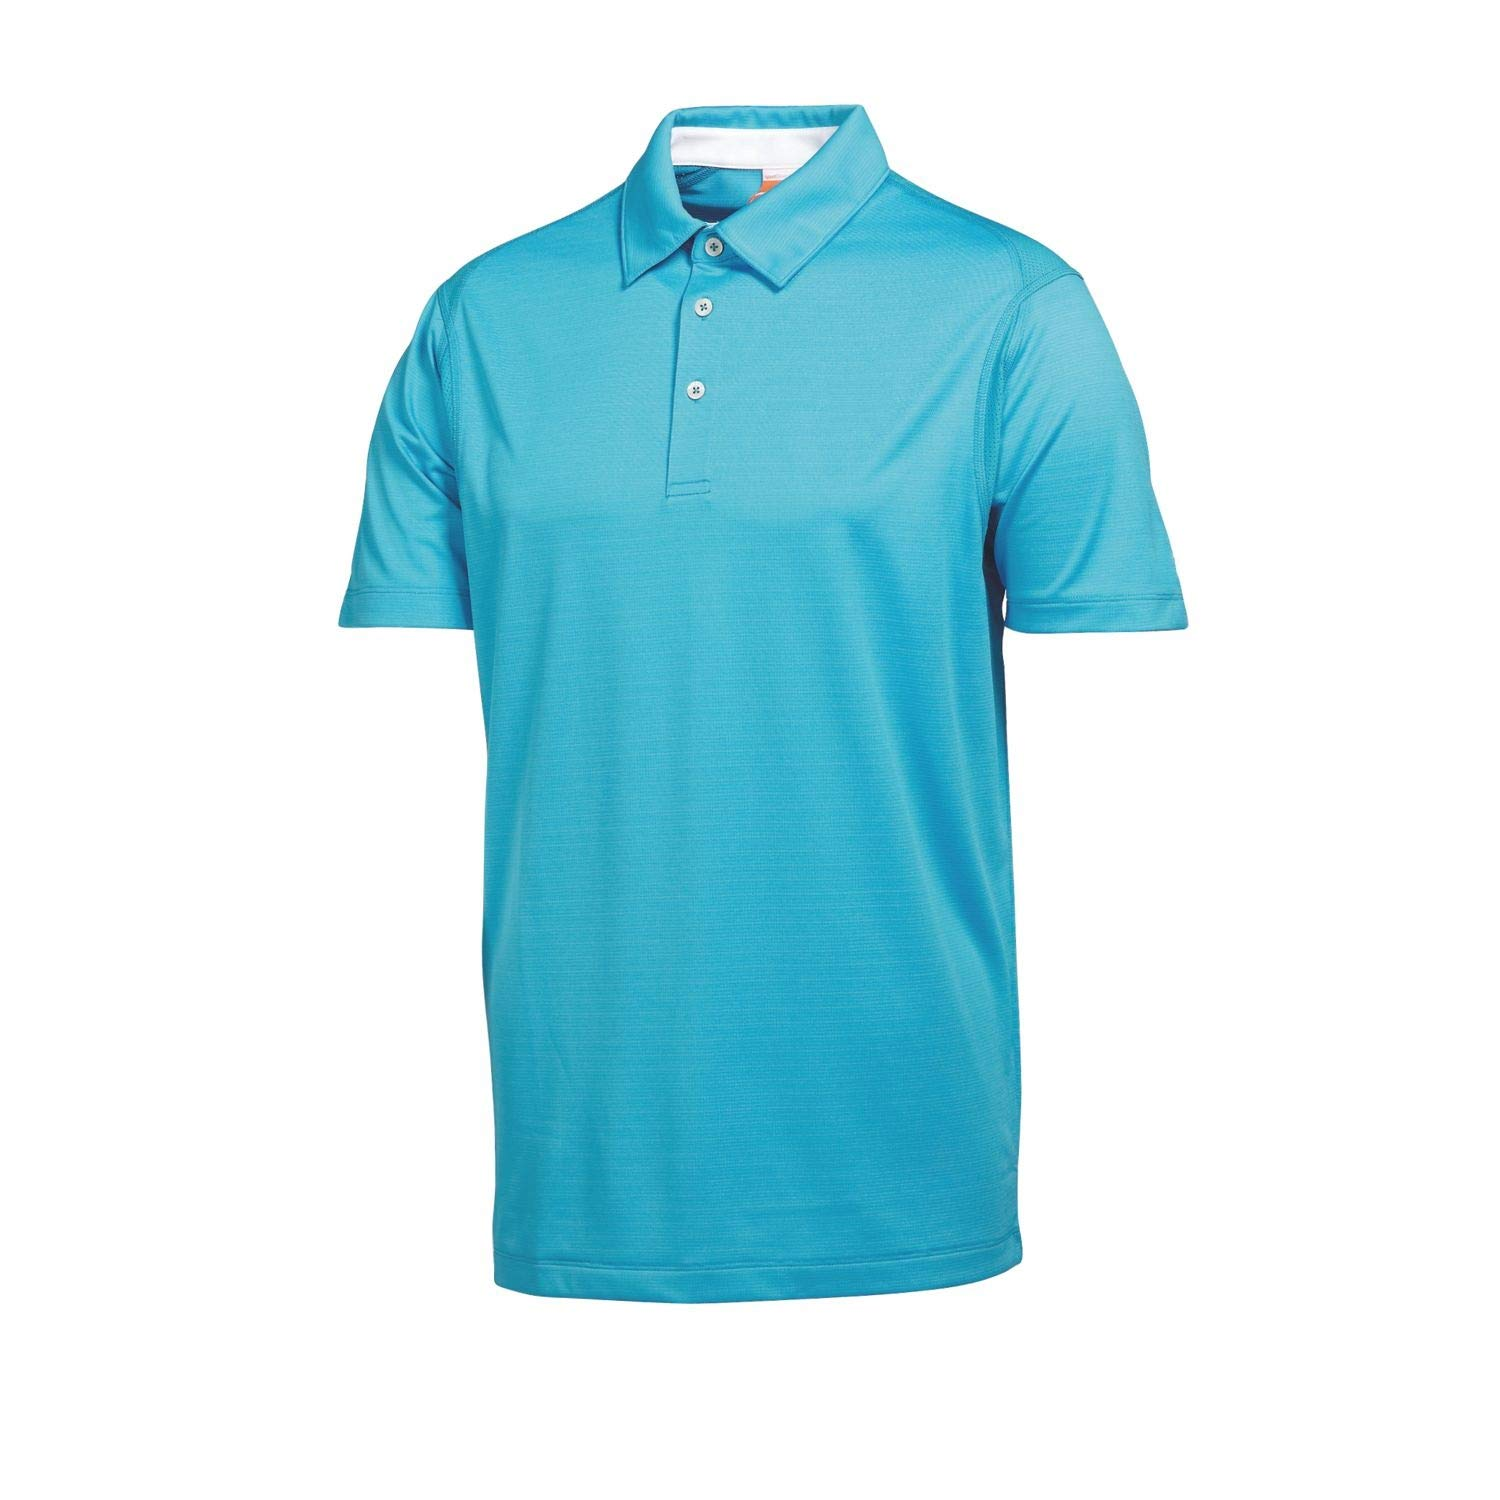 Puma Golf Boy's Tech Polo Tee, Vivid Blue, Small by PUMA